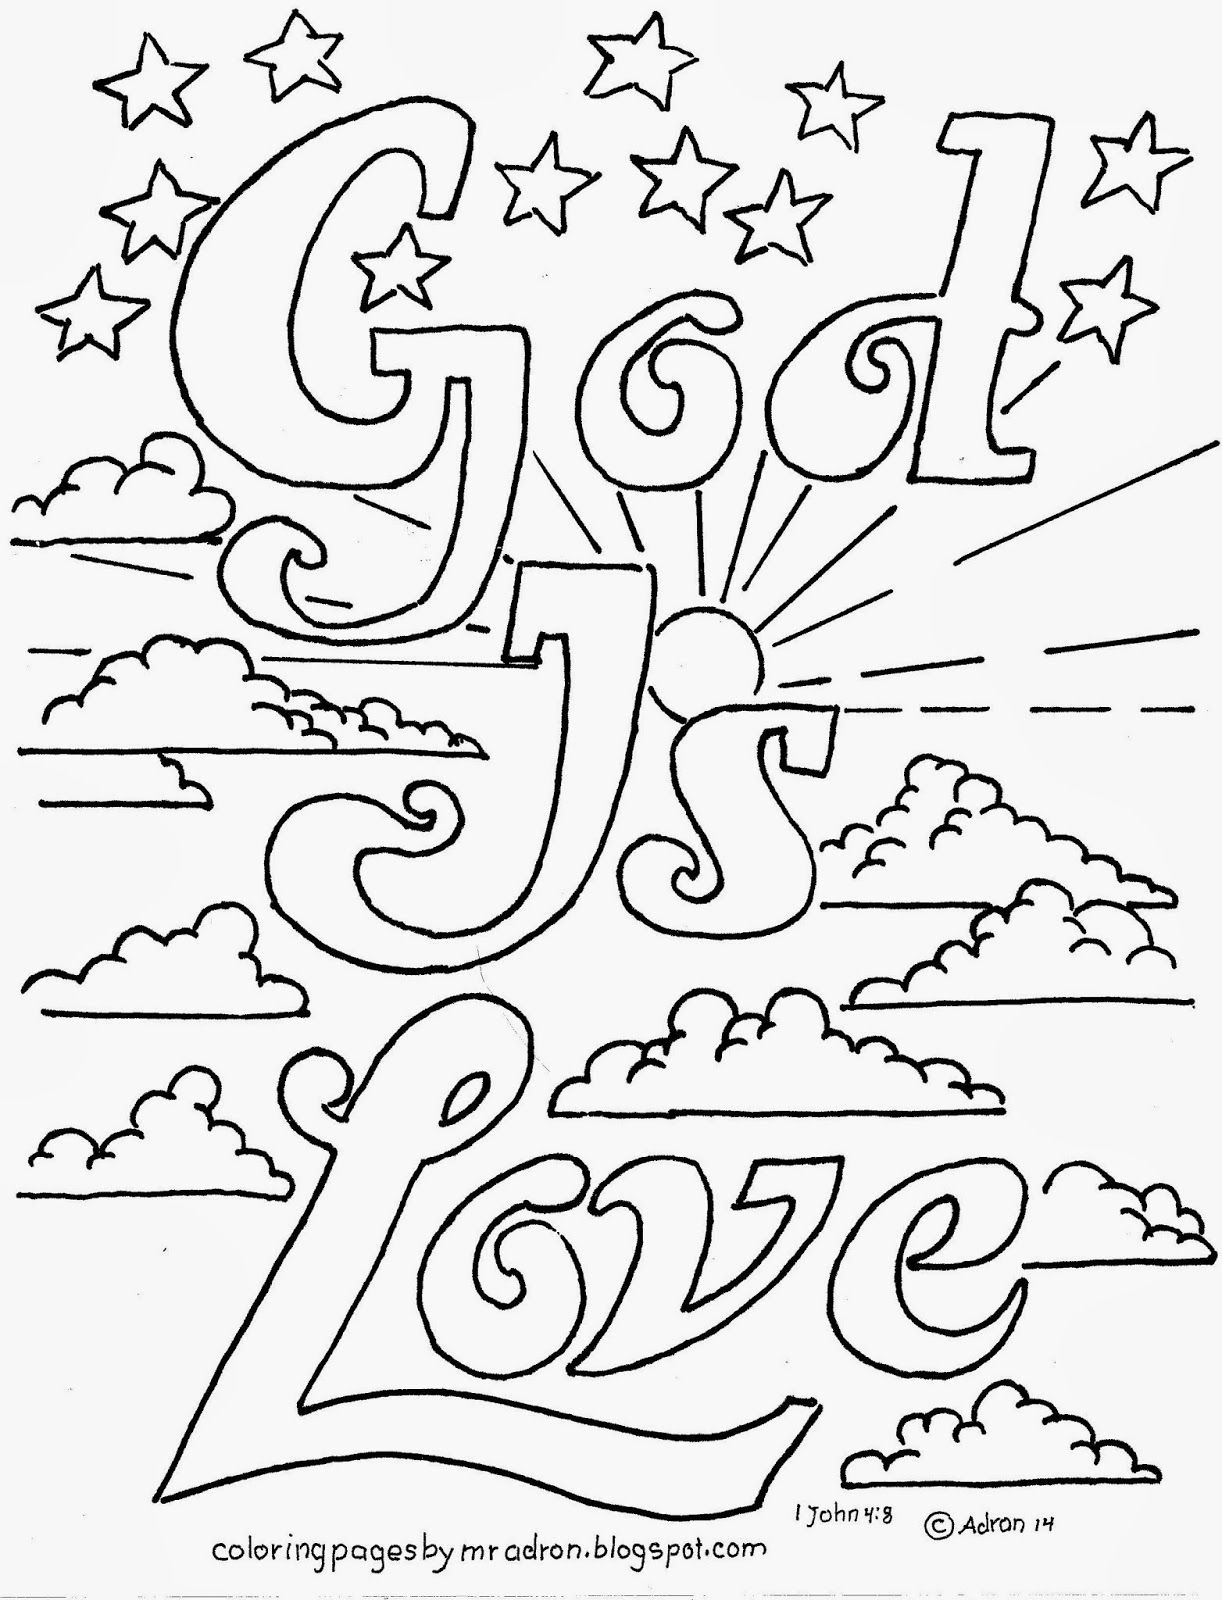 Free printable coloring pages for kids bible - Coloring Pages For Kids By Mr Adron God Is Love Printable Free Kid S